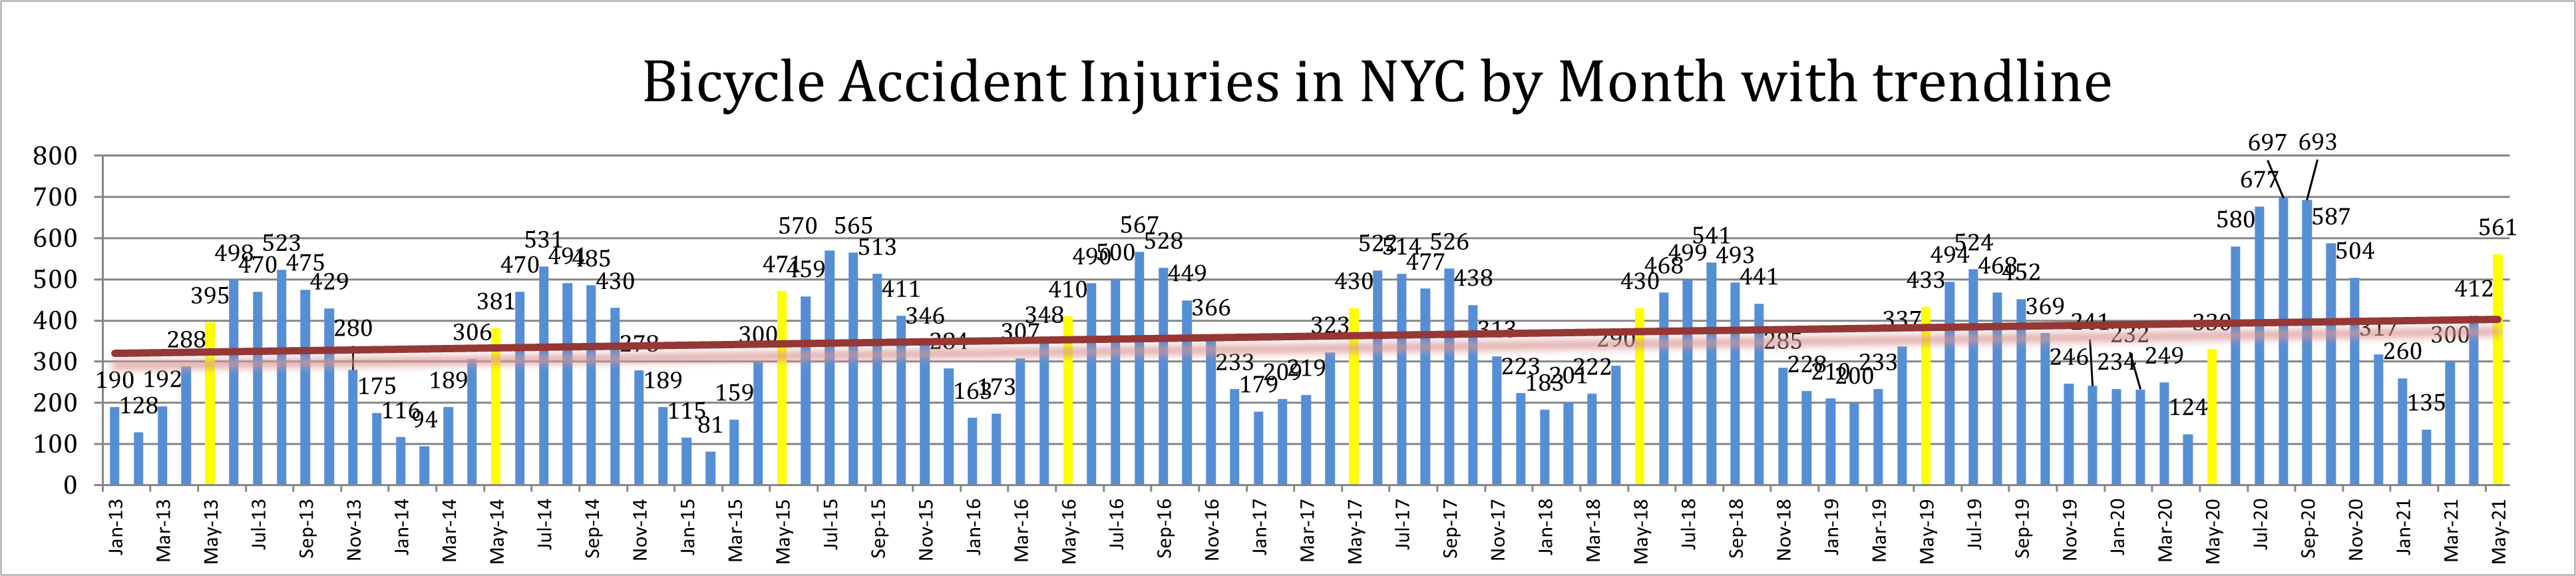 New York Bicycle Accident Injuries May 2021